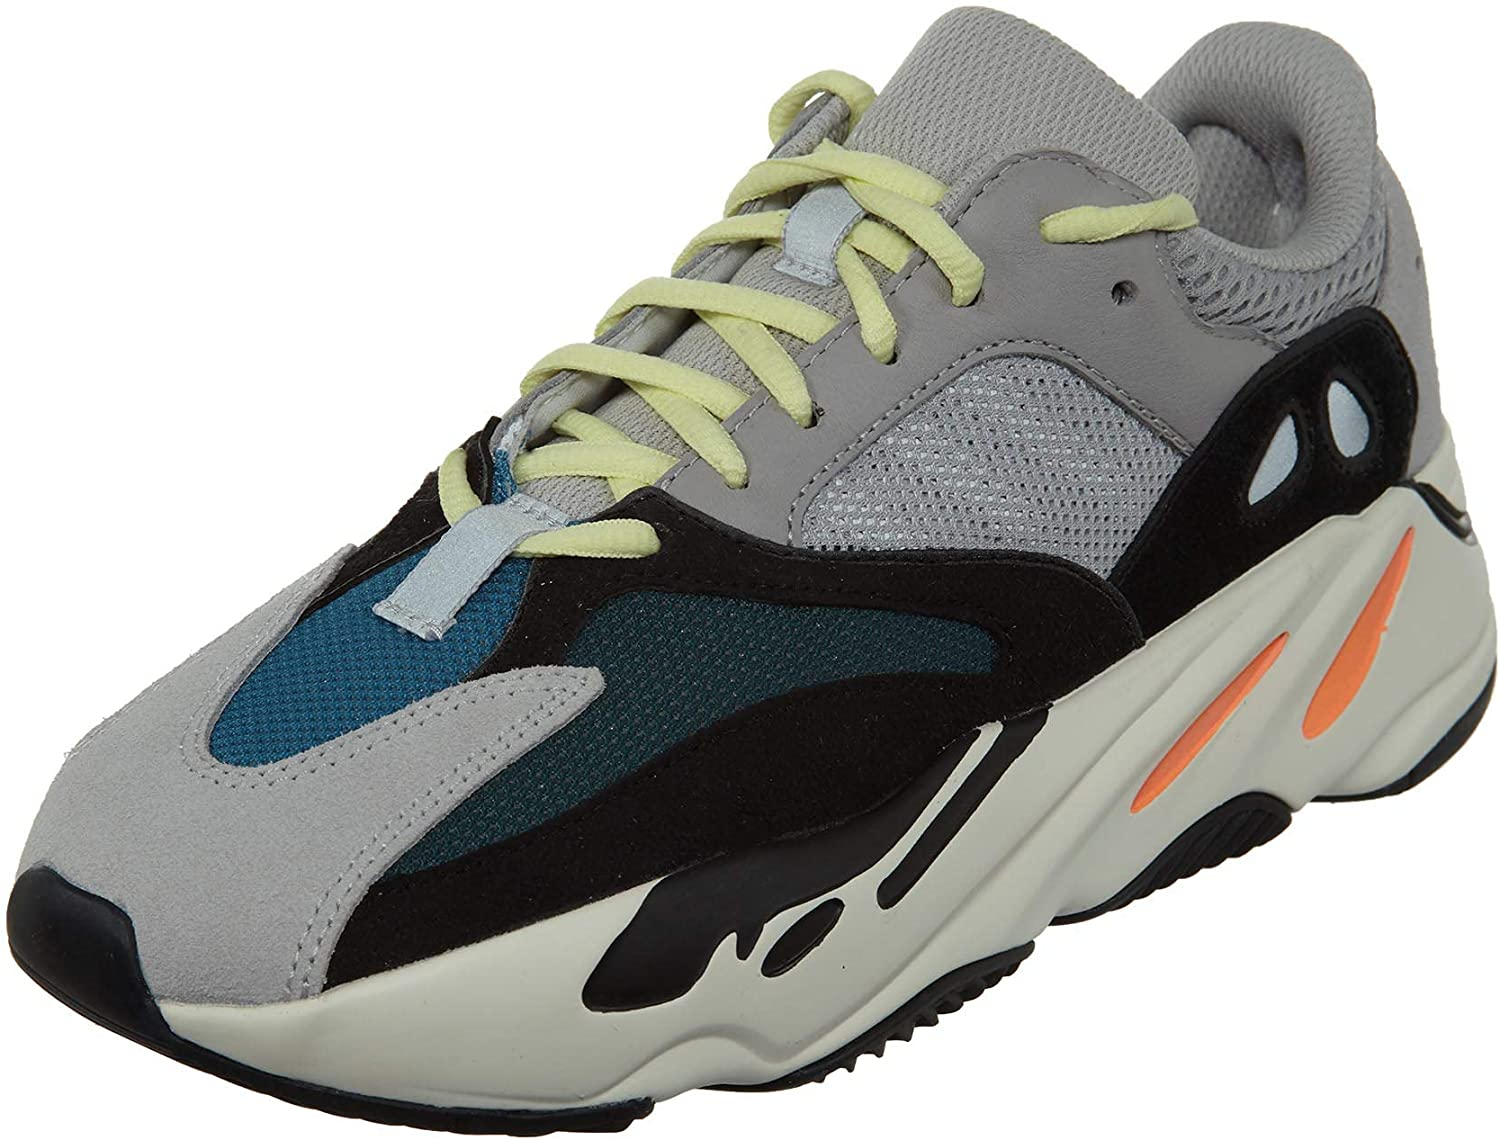 triatlón Analista reflujo  Amazon.com | adidas Yeezy Boost 700 | Fashion Sneakers